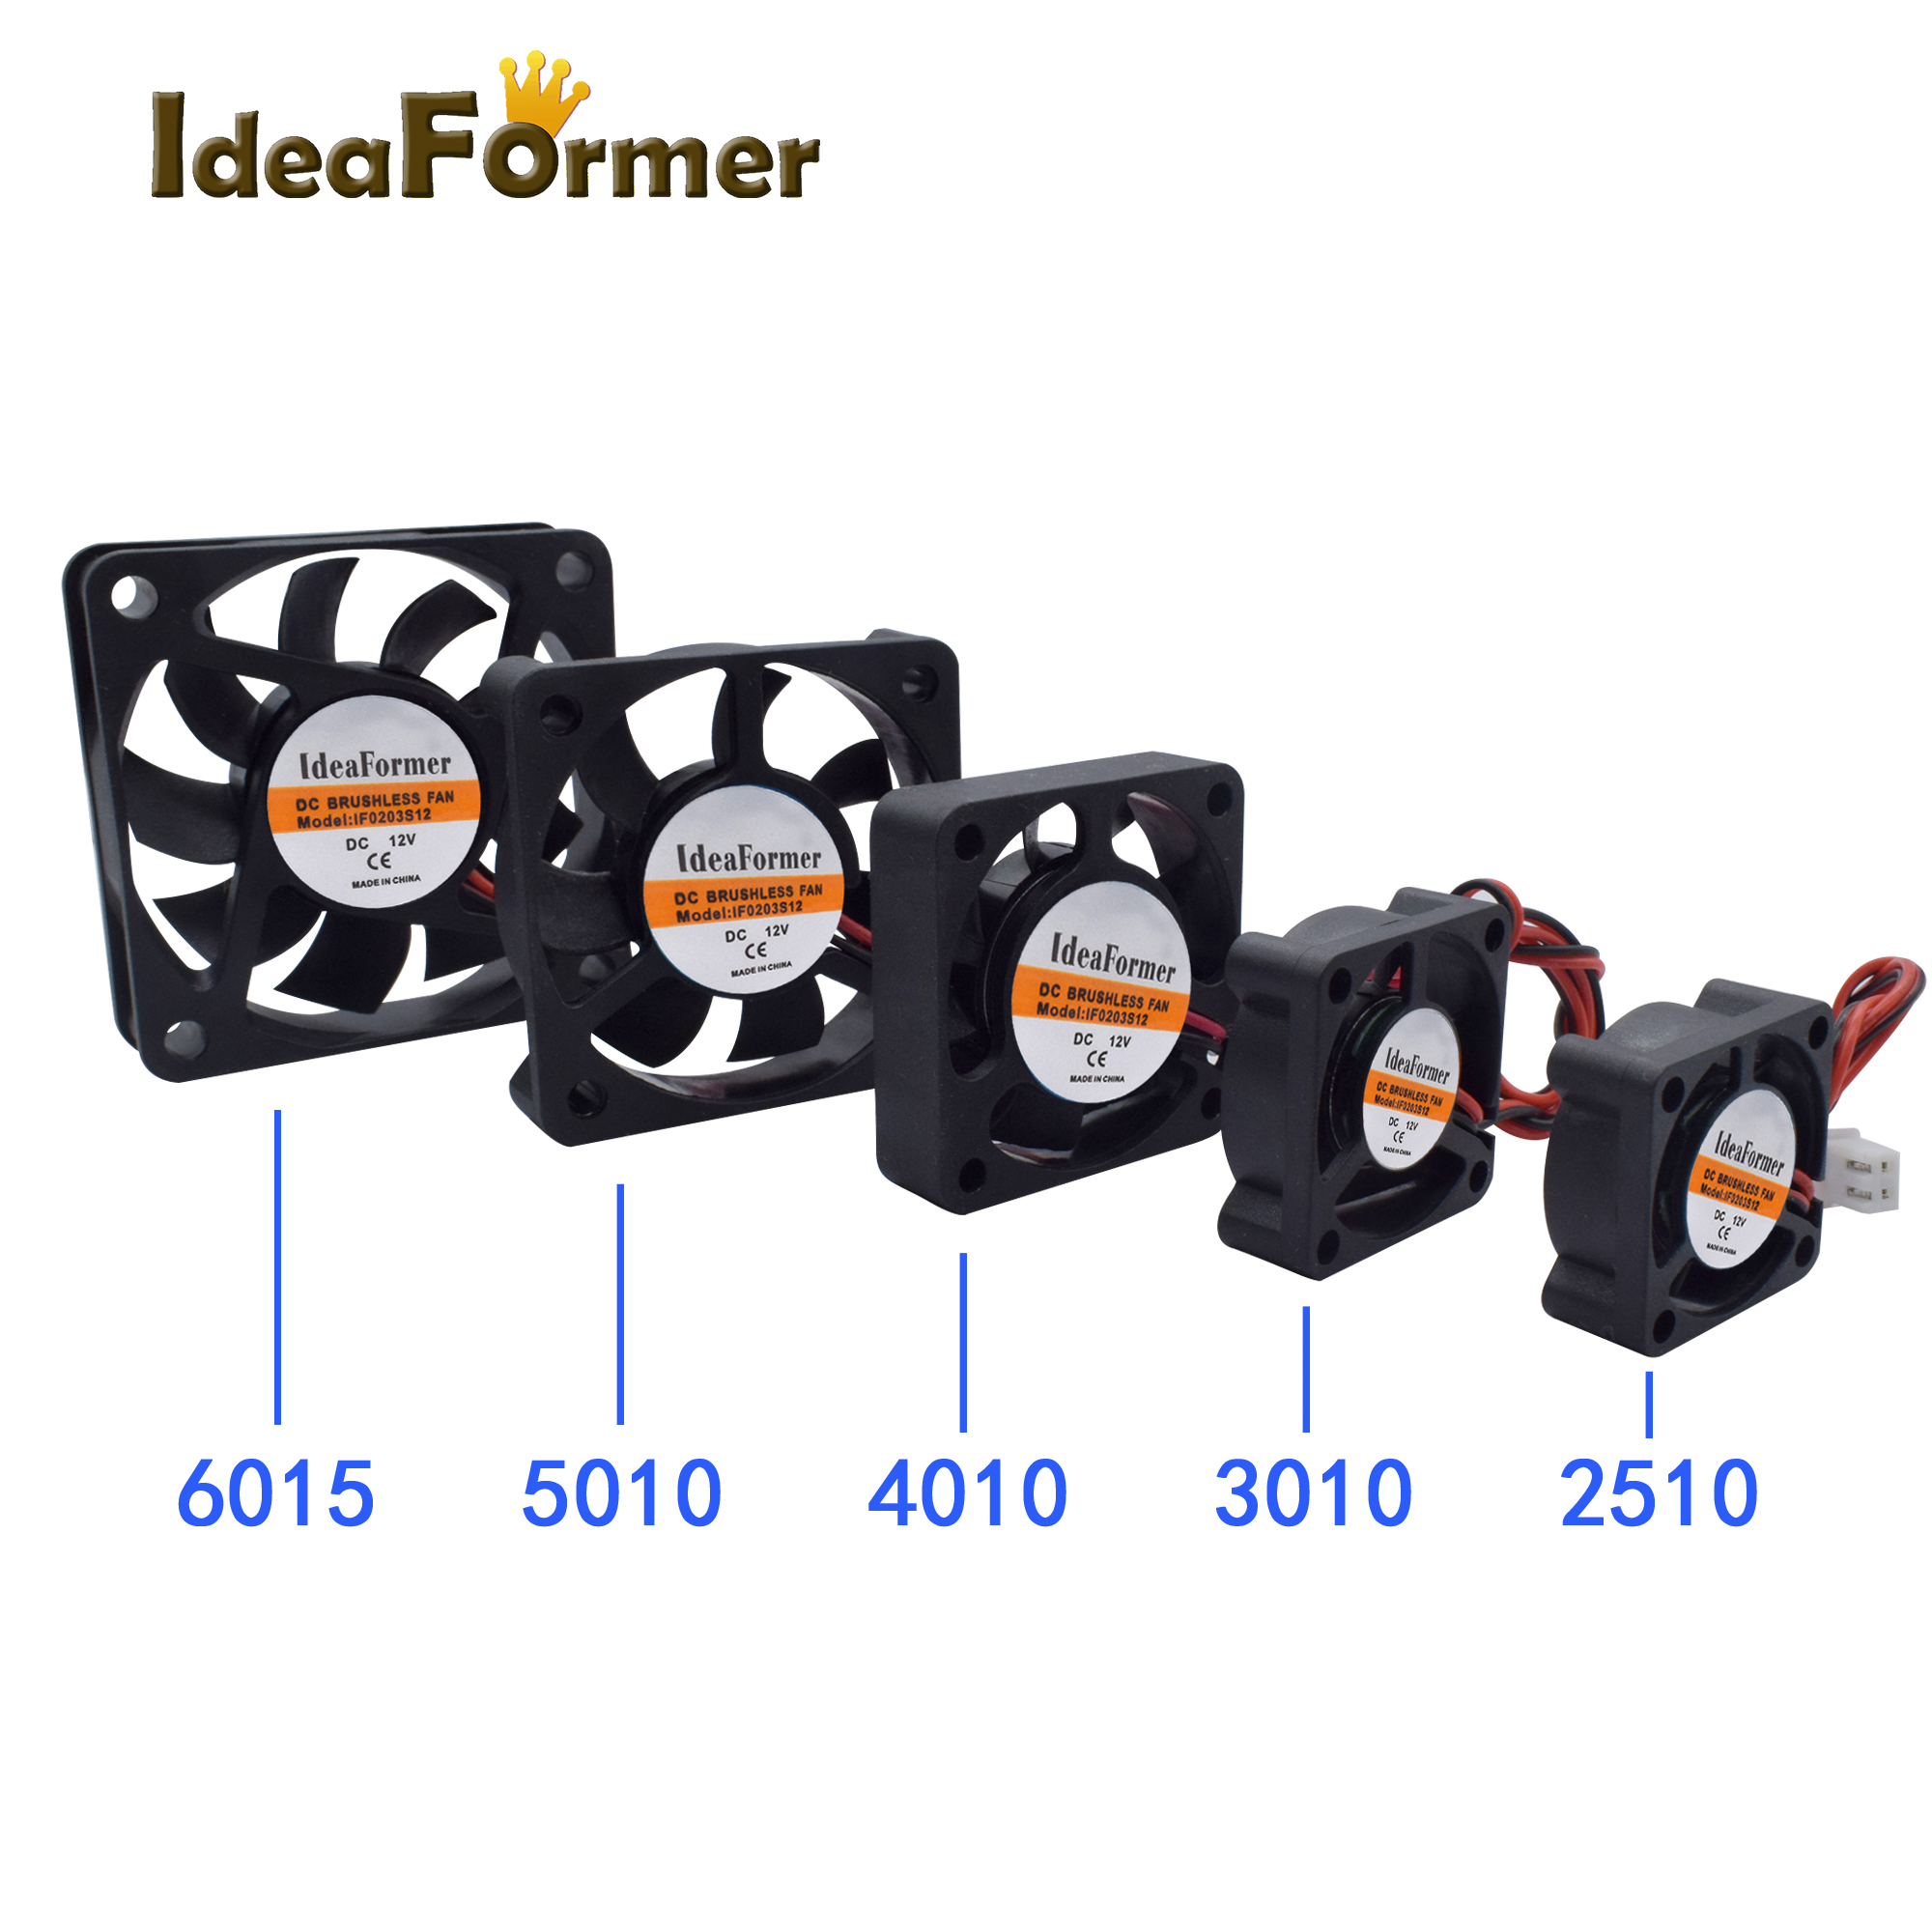 3D Printer Cooling fan 2510 3010 4010 <font><b>5010</b></font> 6015mm With 2Pin XH2.54 Cable Cooler DC 5V 12V 24V Multiple Options Cooling Fan. image